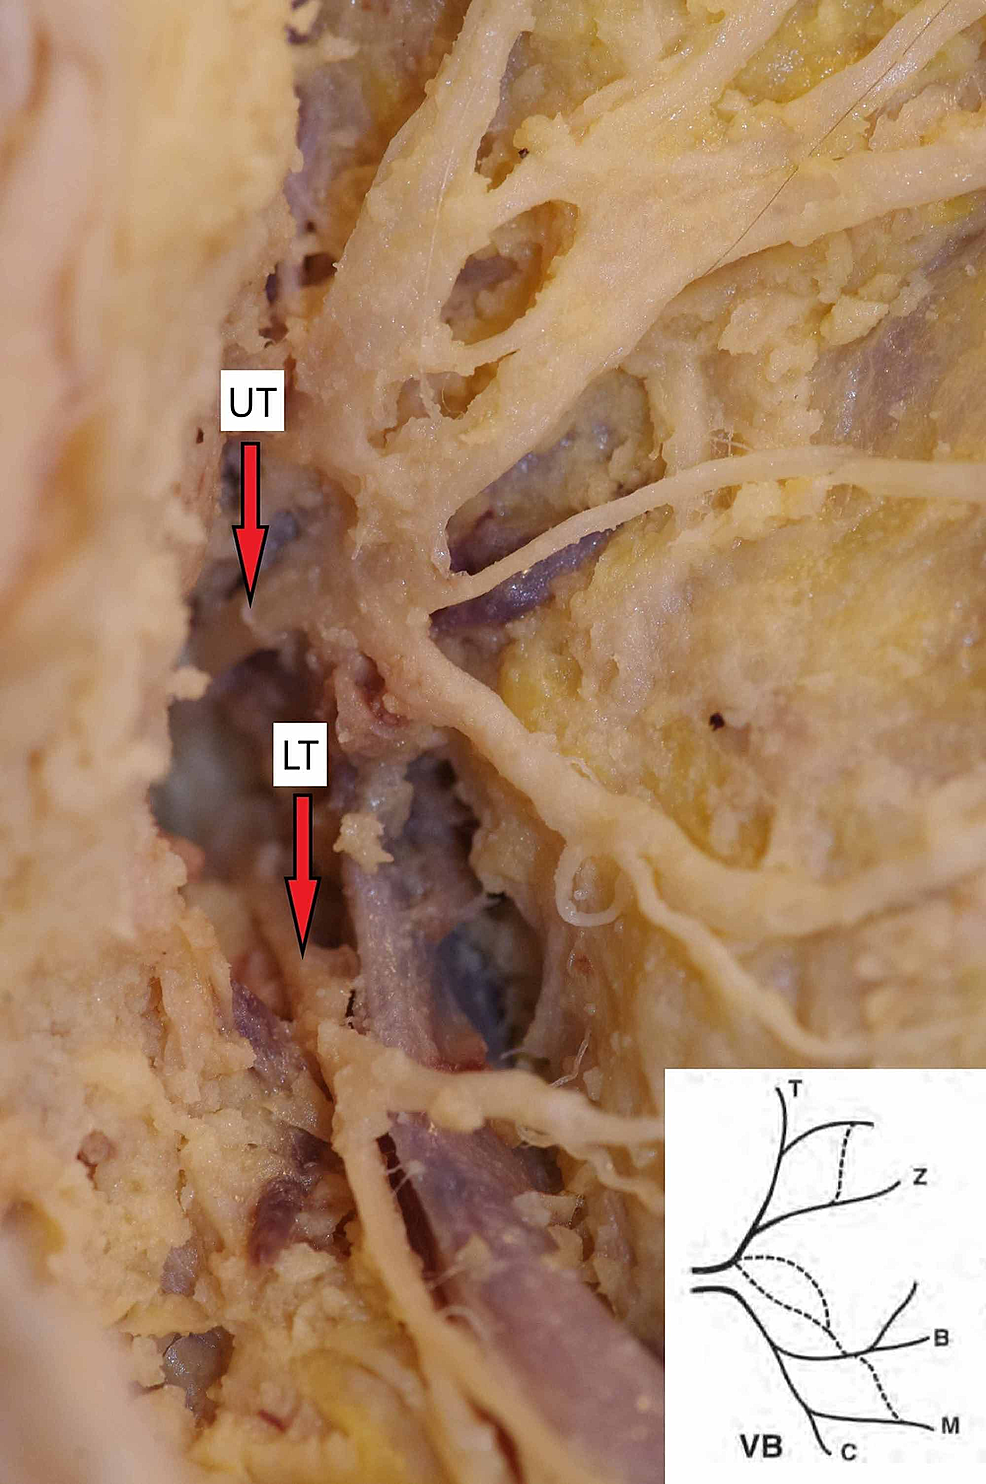 Two-separate-trunks-of-the-facial-nerve-emerging-from-the-skull-base